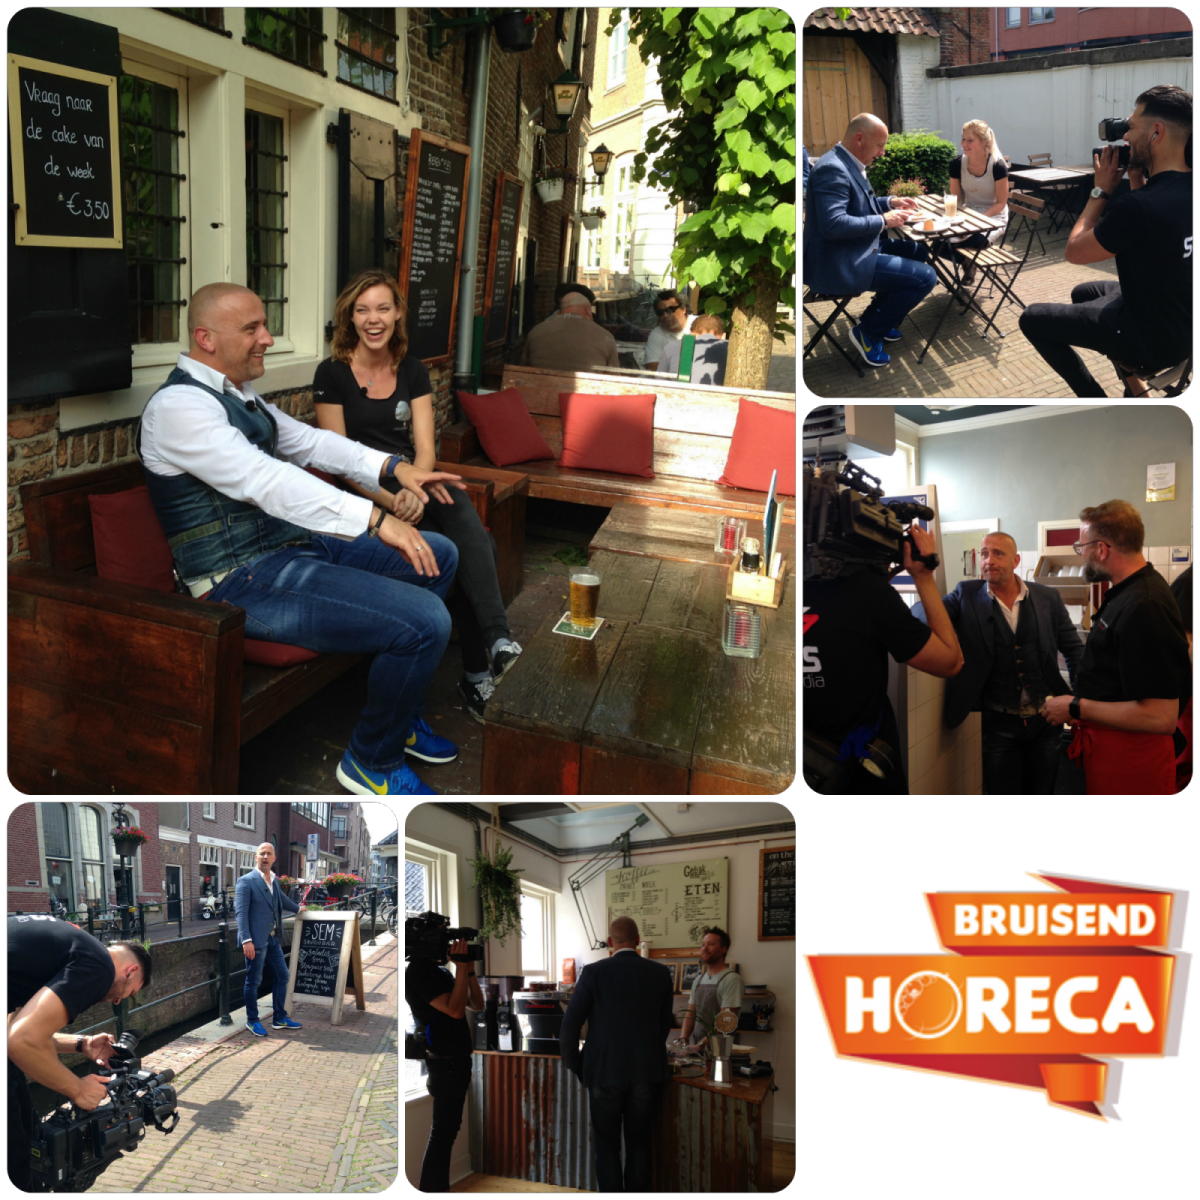 Bruisend Horeca collage